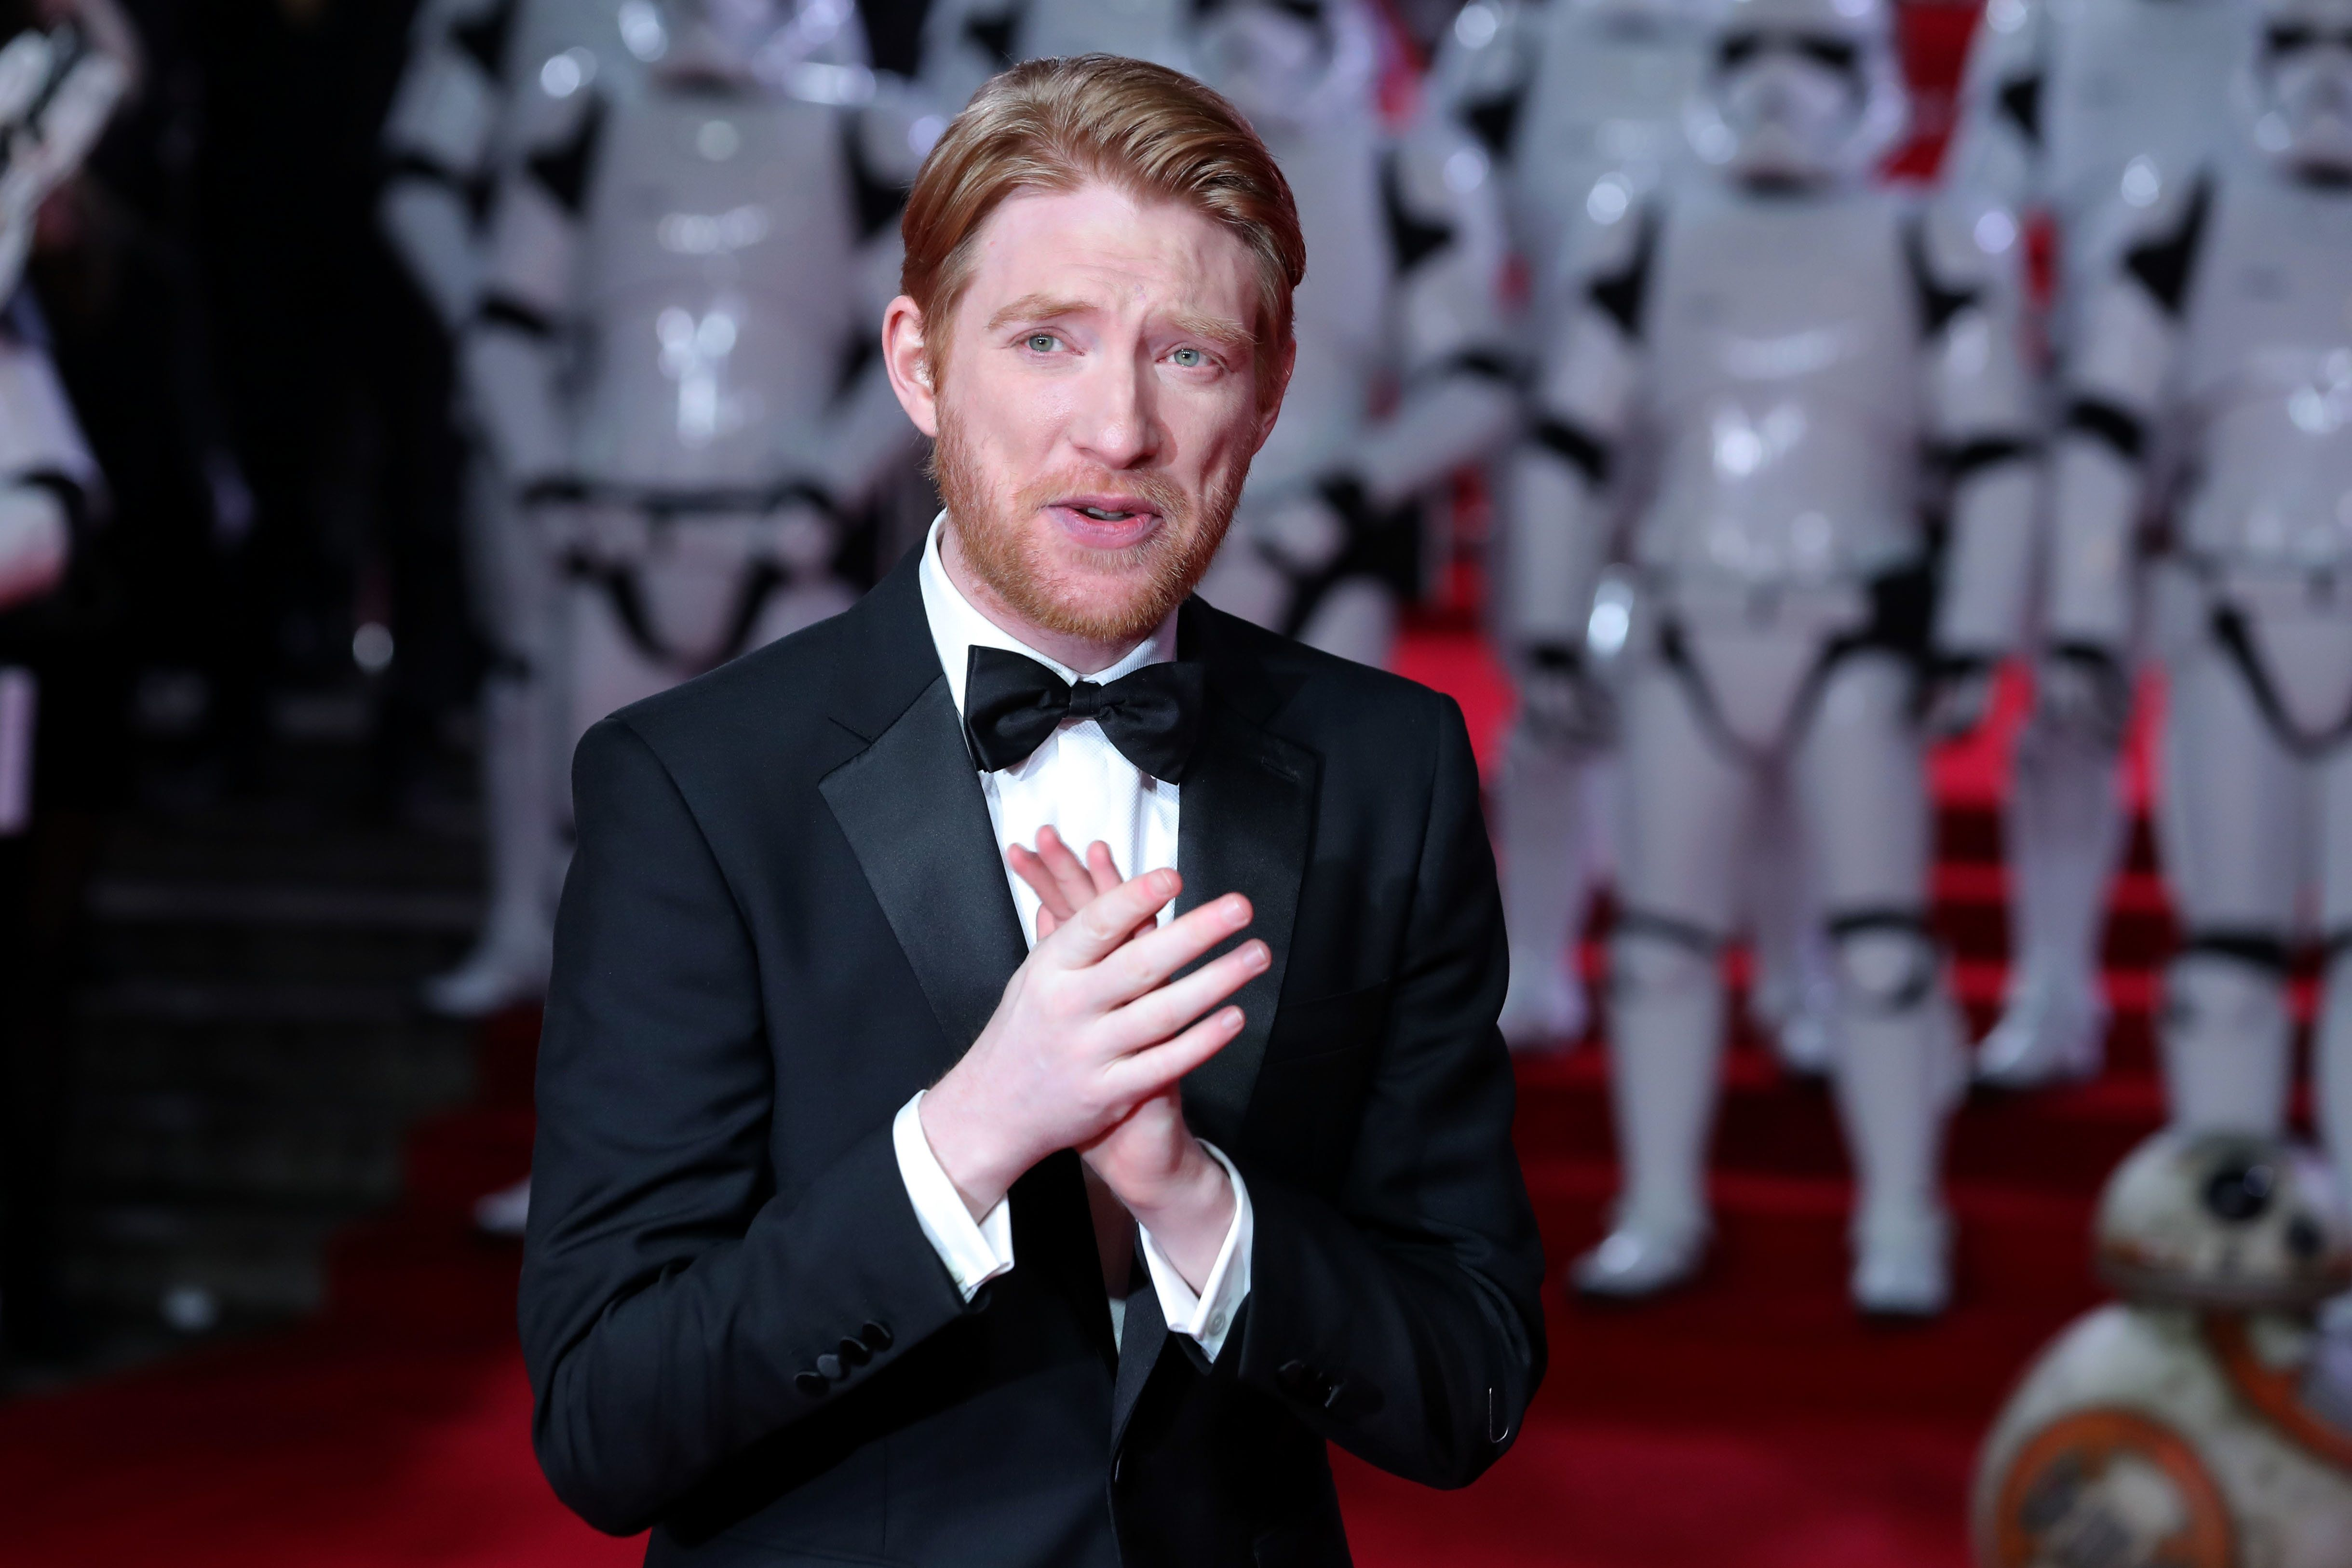 Domhnall Gleeson, That 'Nasty Piece Of Work' General Hux, Is One Of Today's Brightest Actors